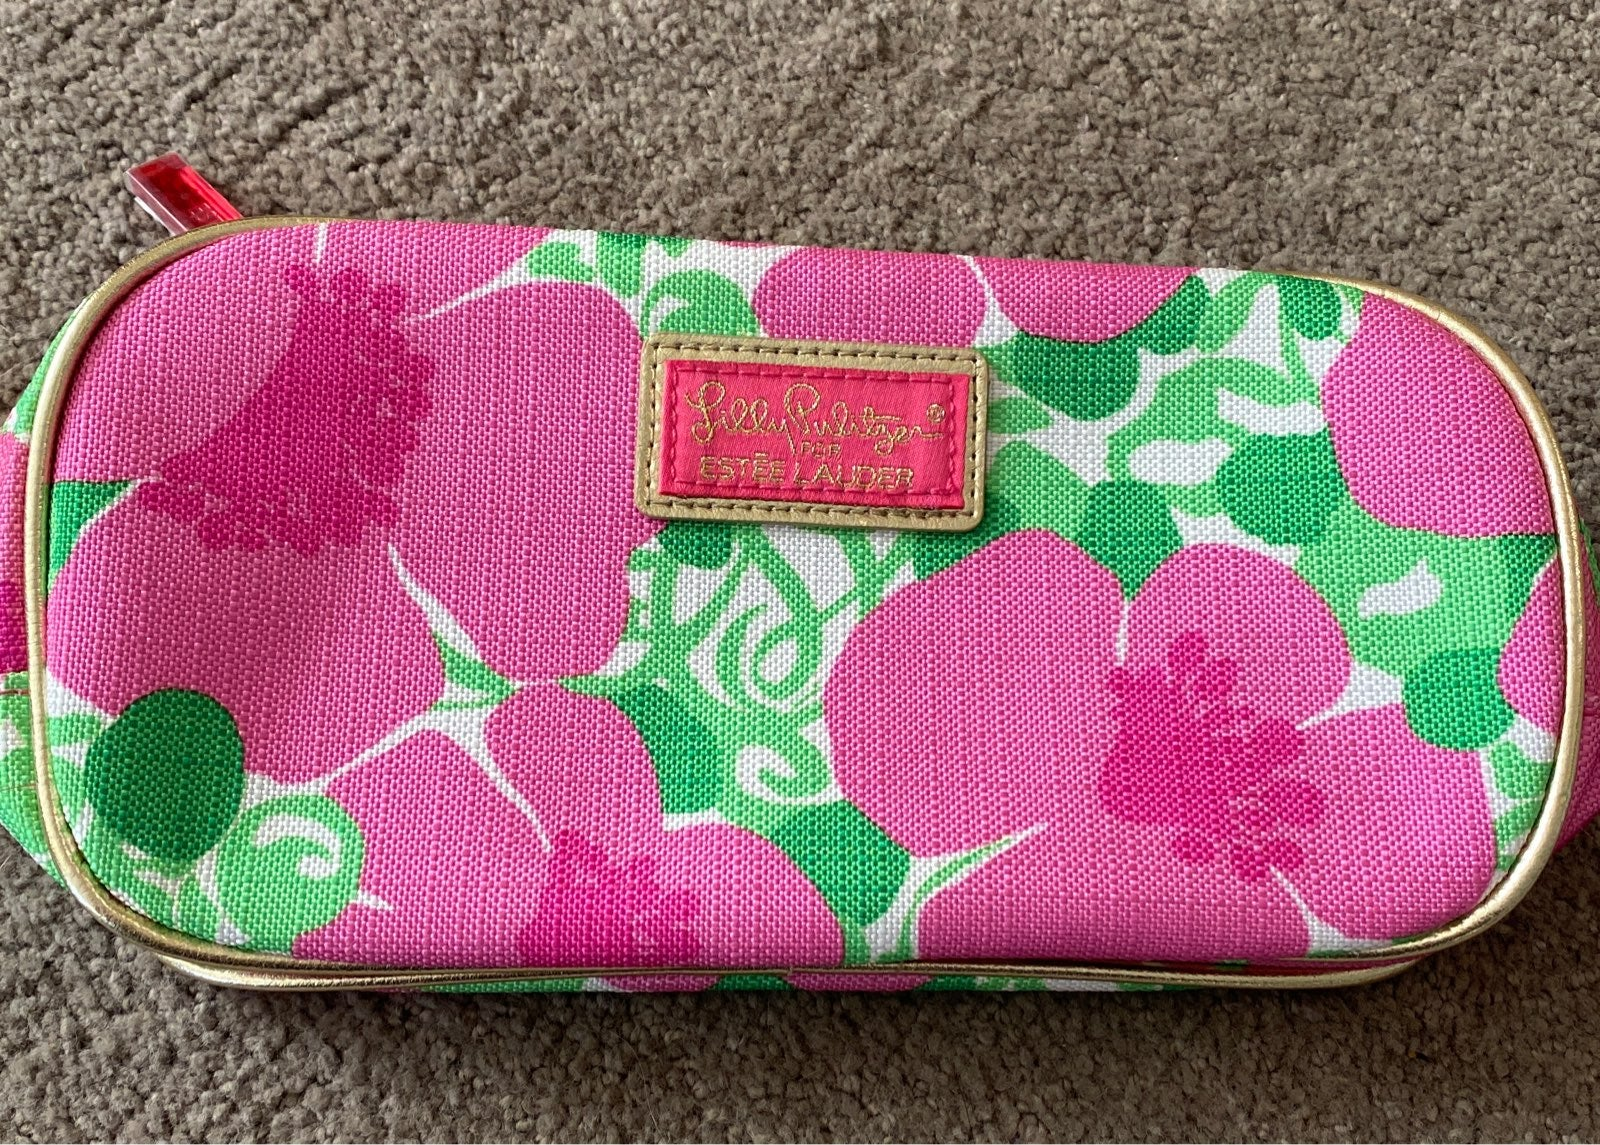 Lilly Pulitzer for Estee Lauder case